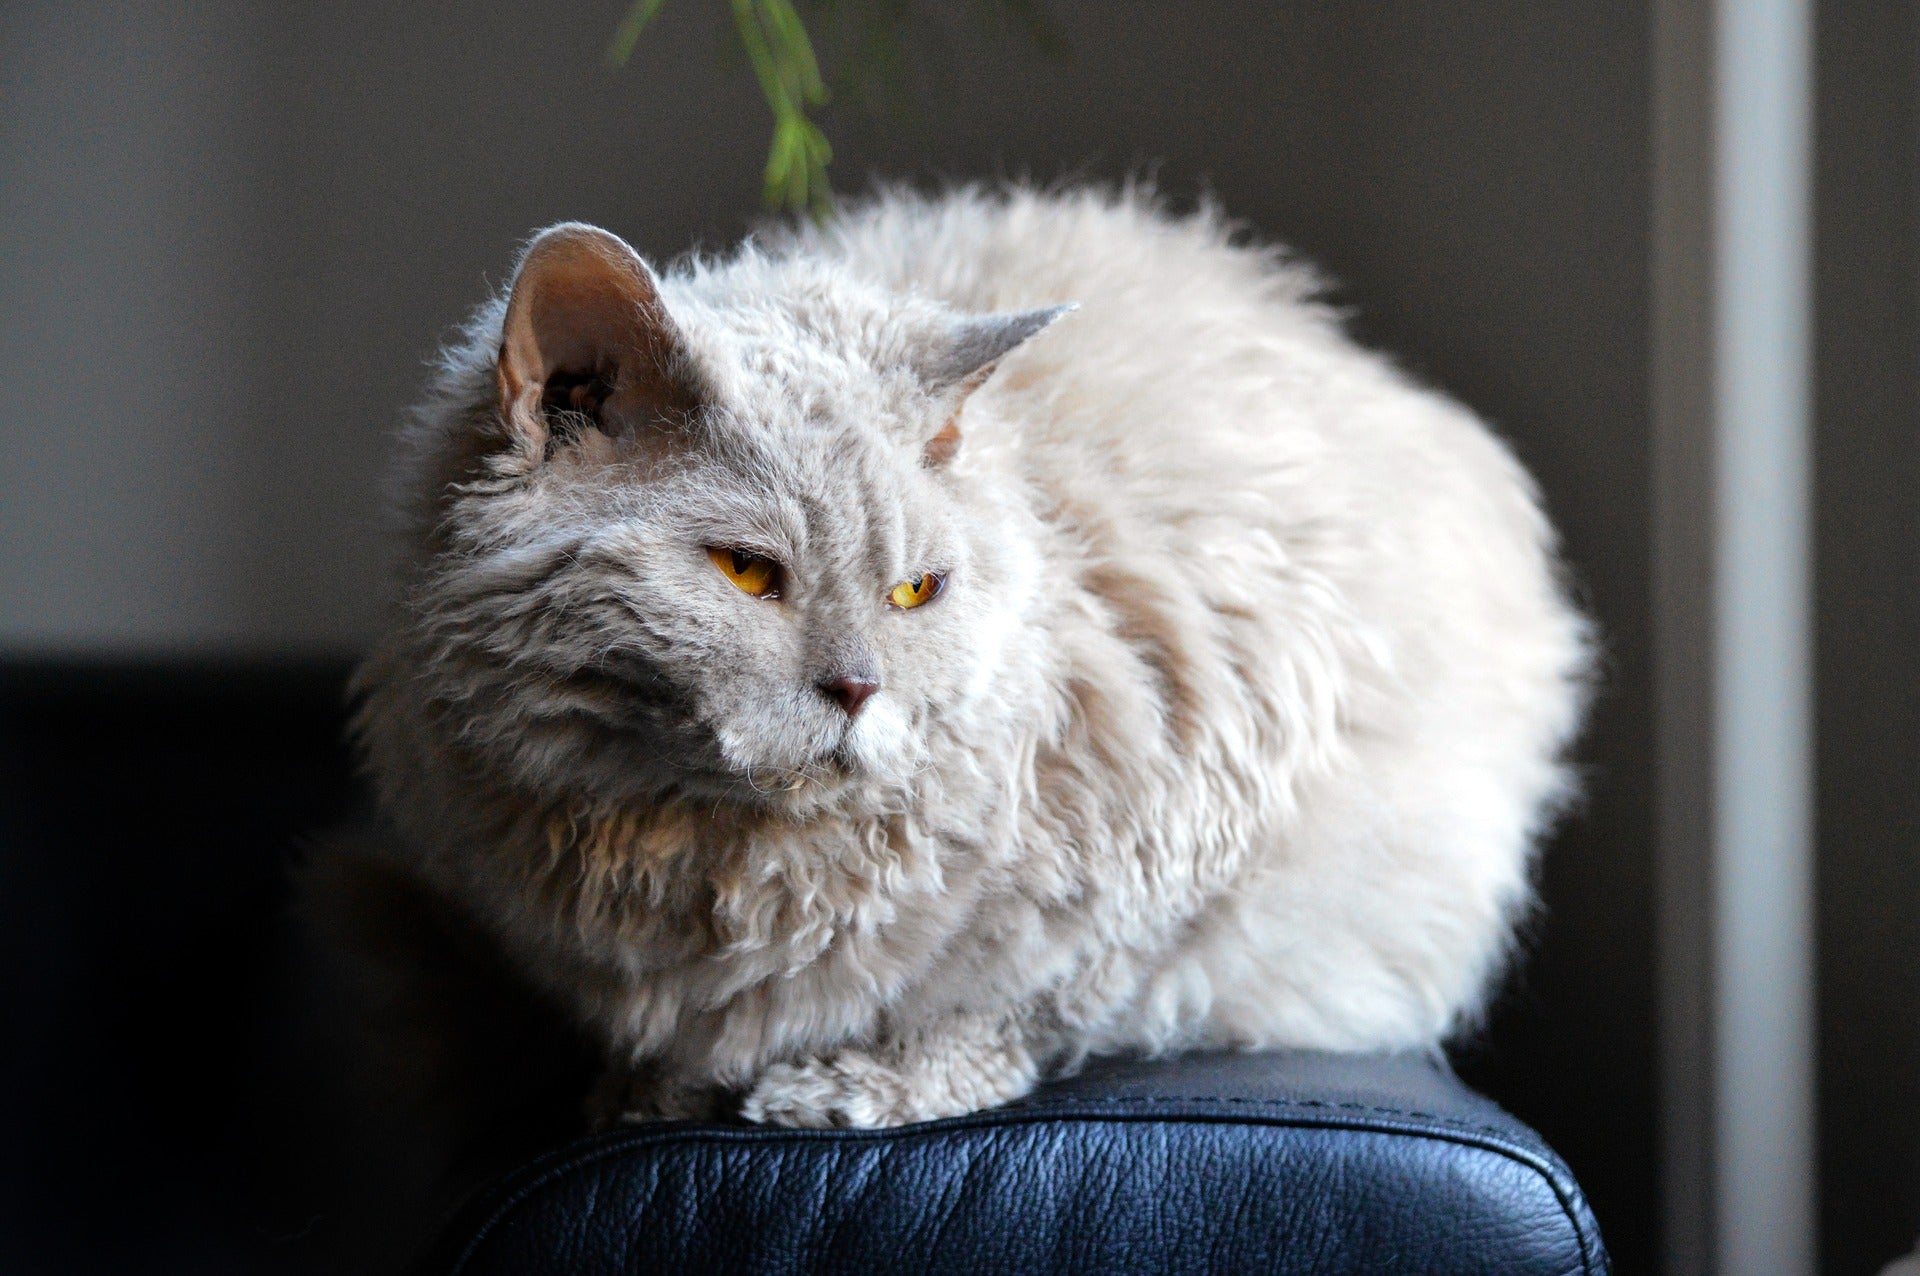 A curly gray cat